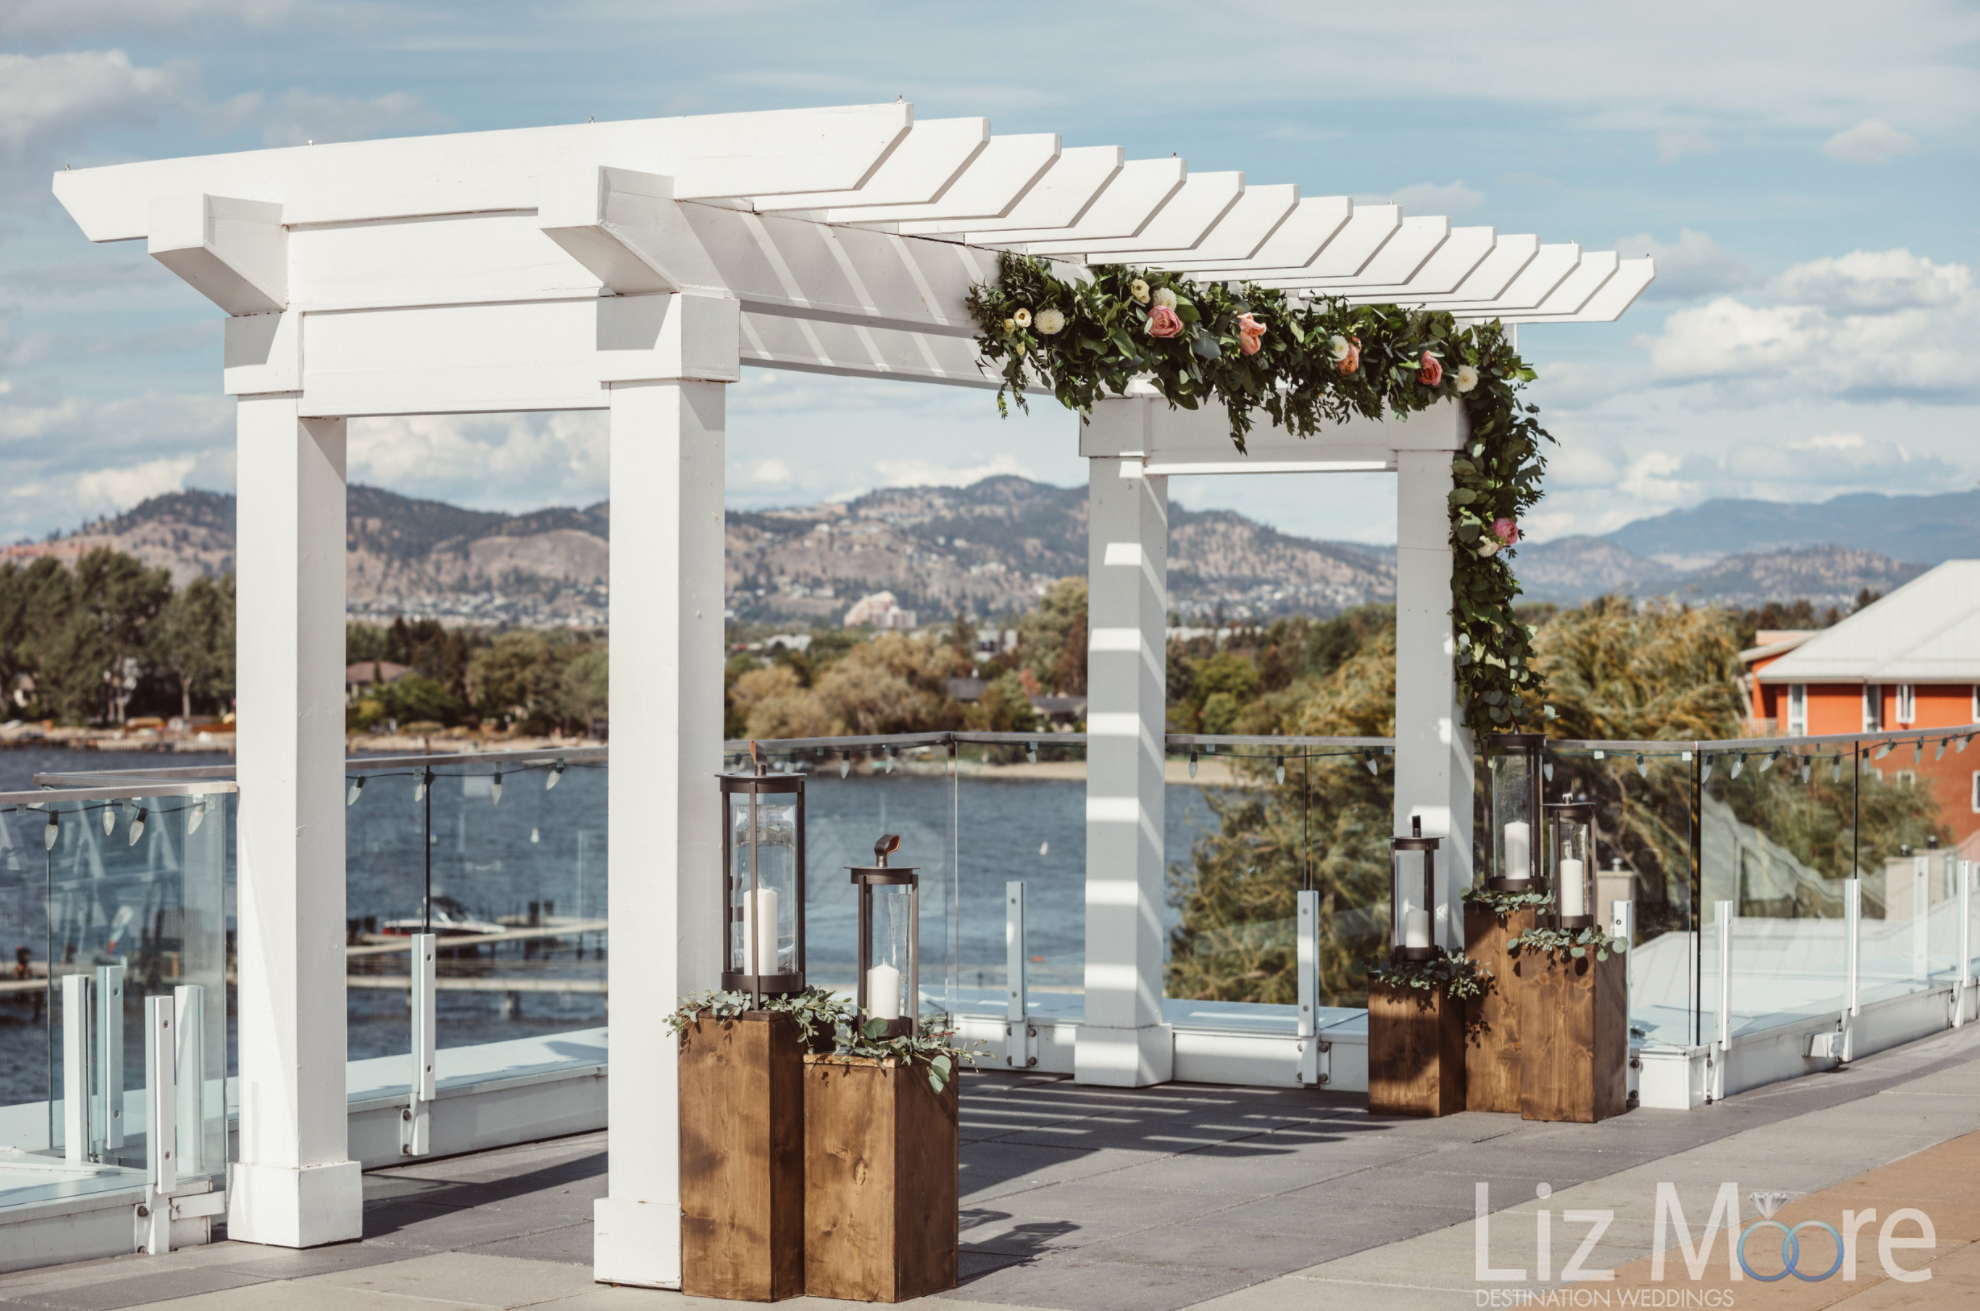 what are gazebo located on the main deck overlooking the lake and mountains